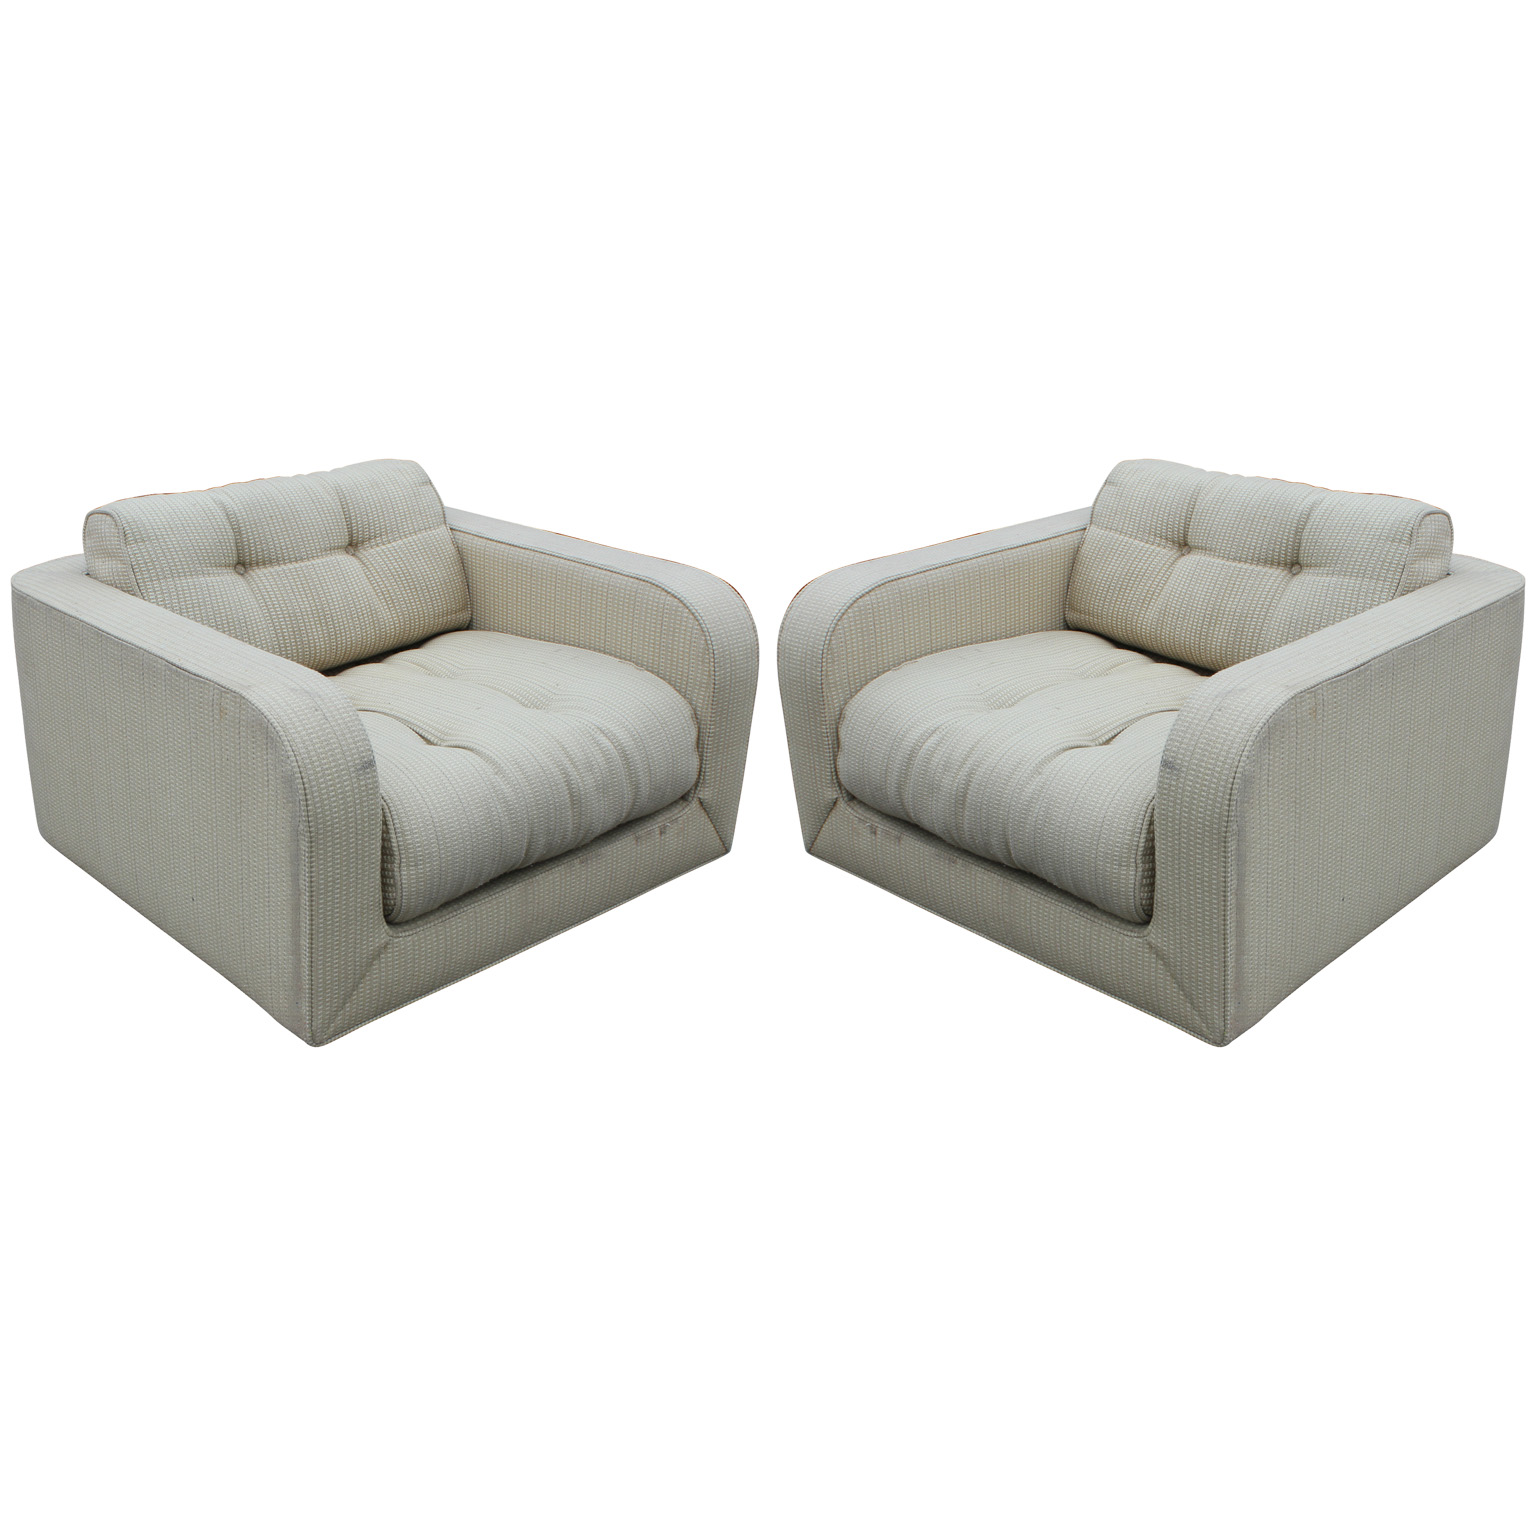 Wonderful Pair of Clean Lined Oversized Lounge Chairs